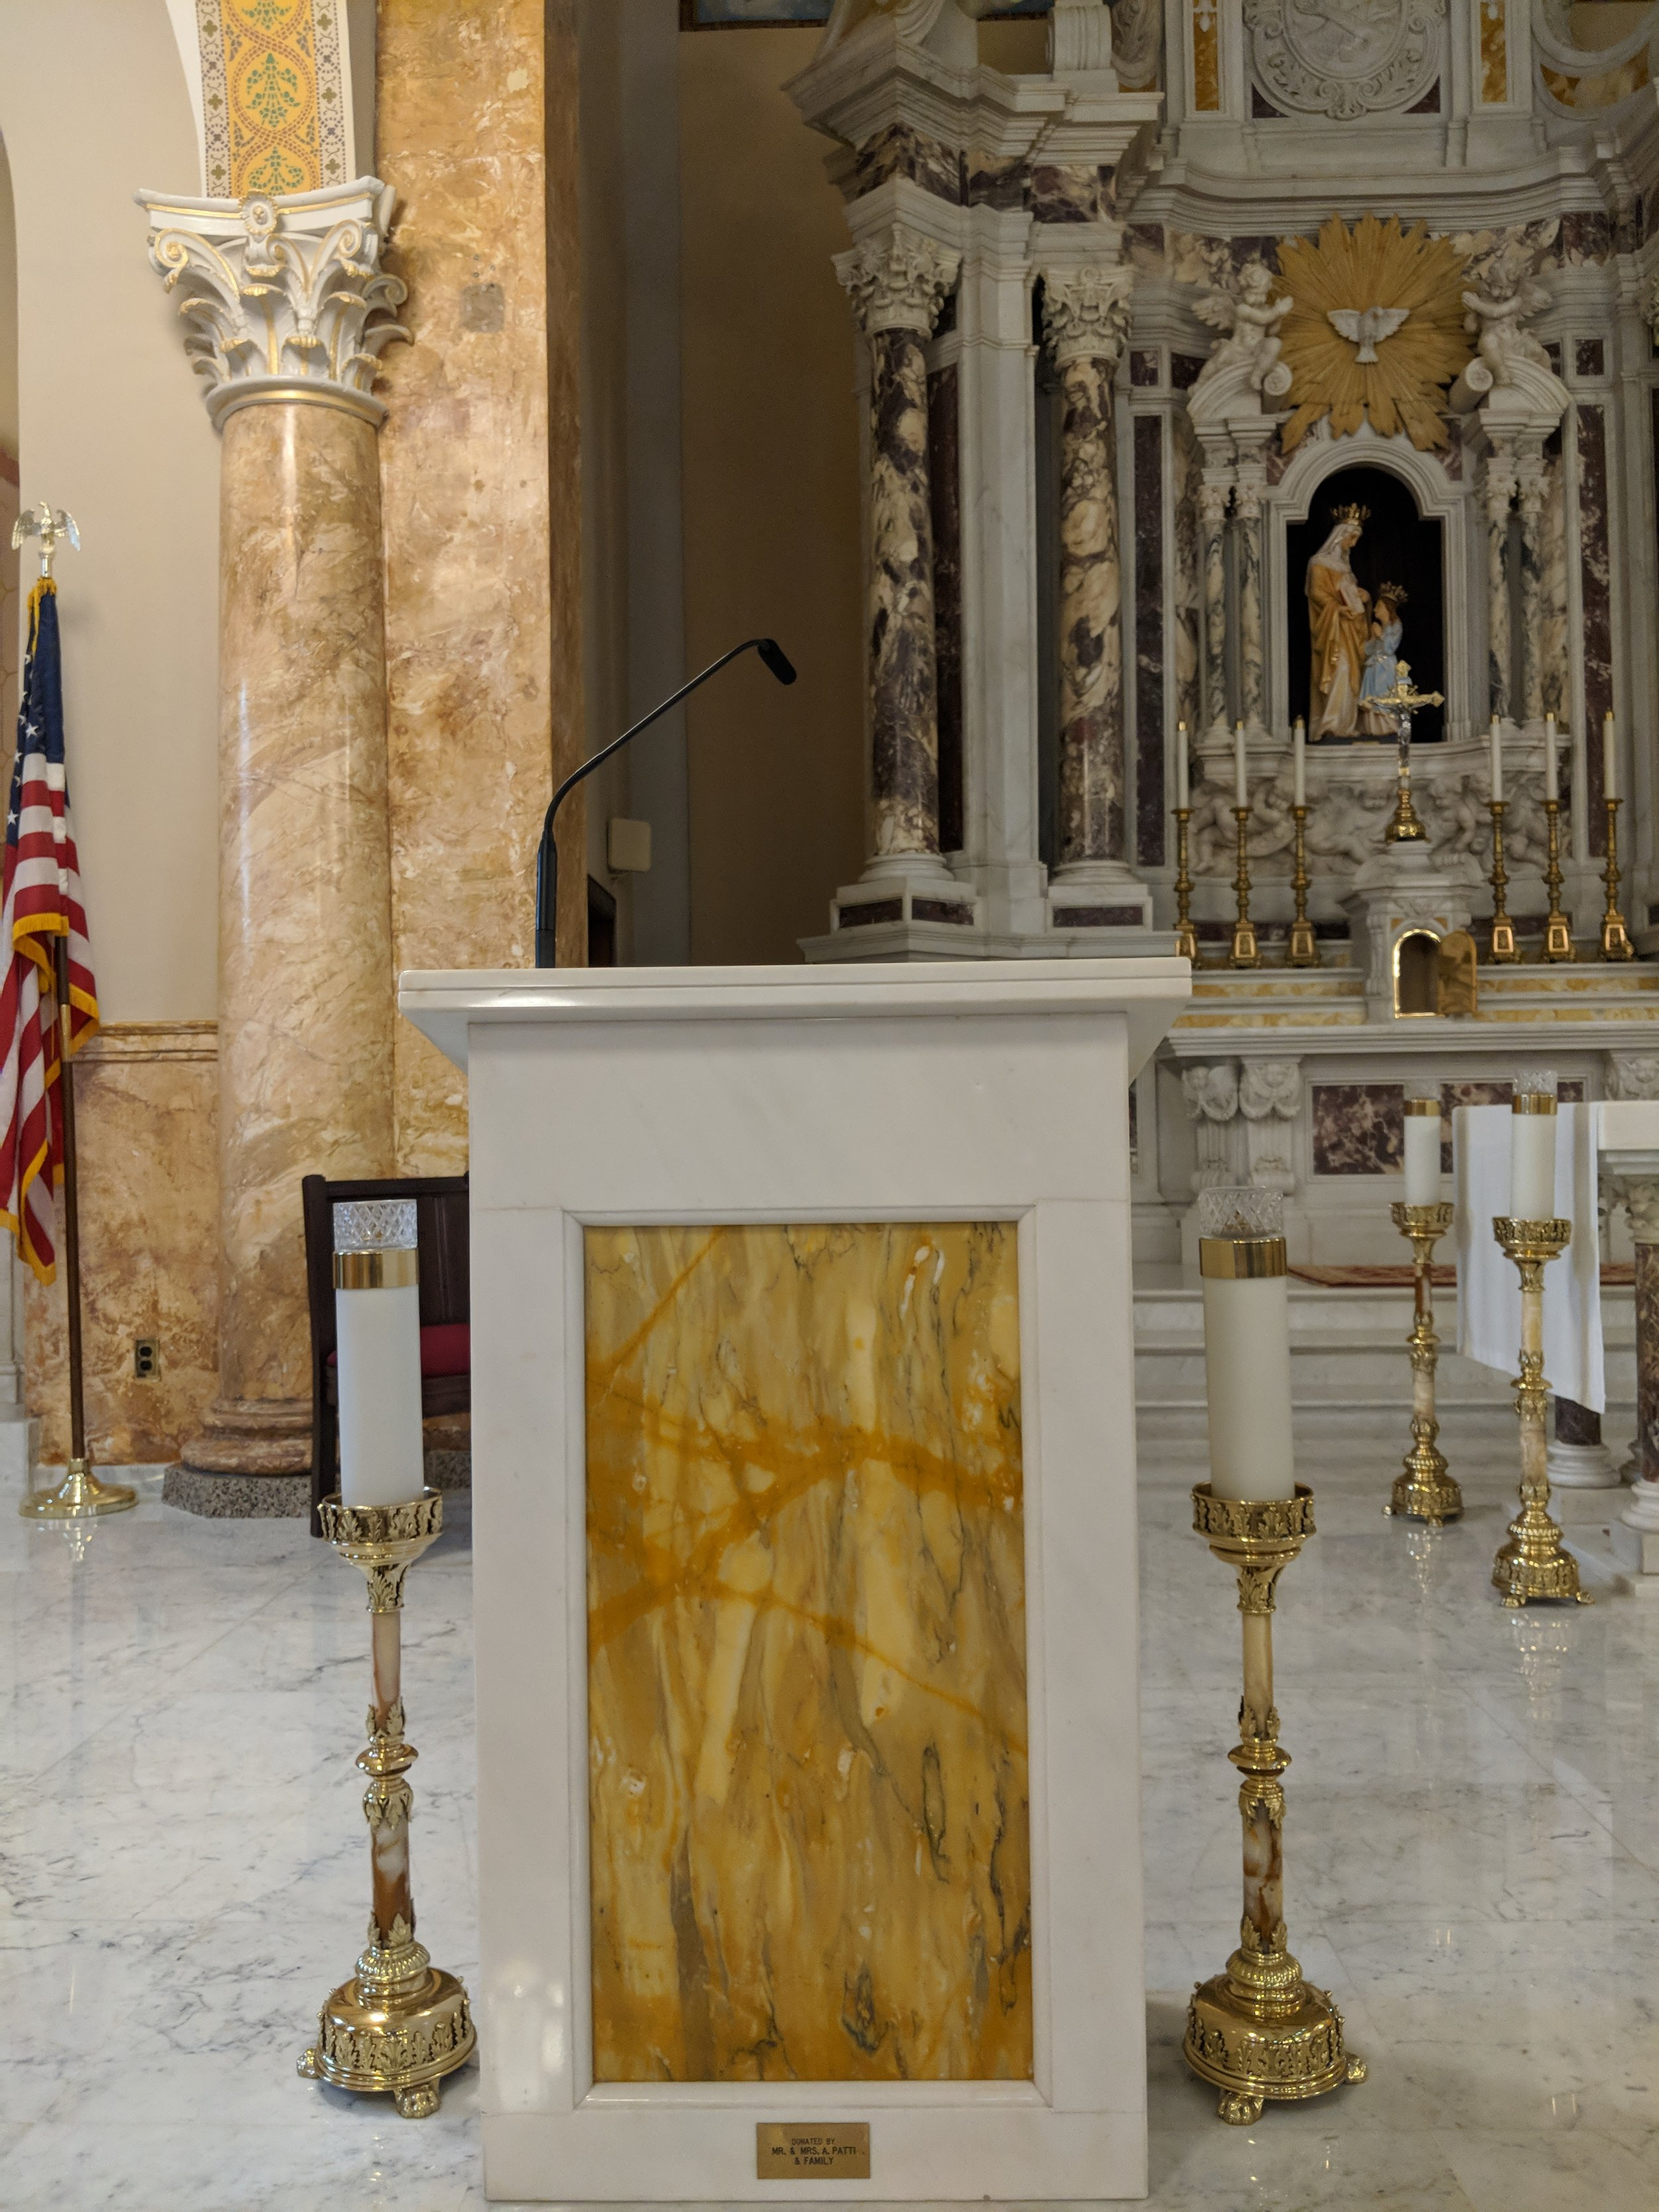 An Audio-Technica Engineered series microphone is used on the pulpit.